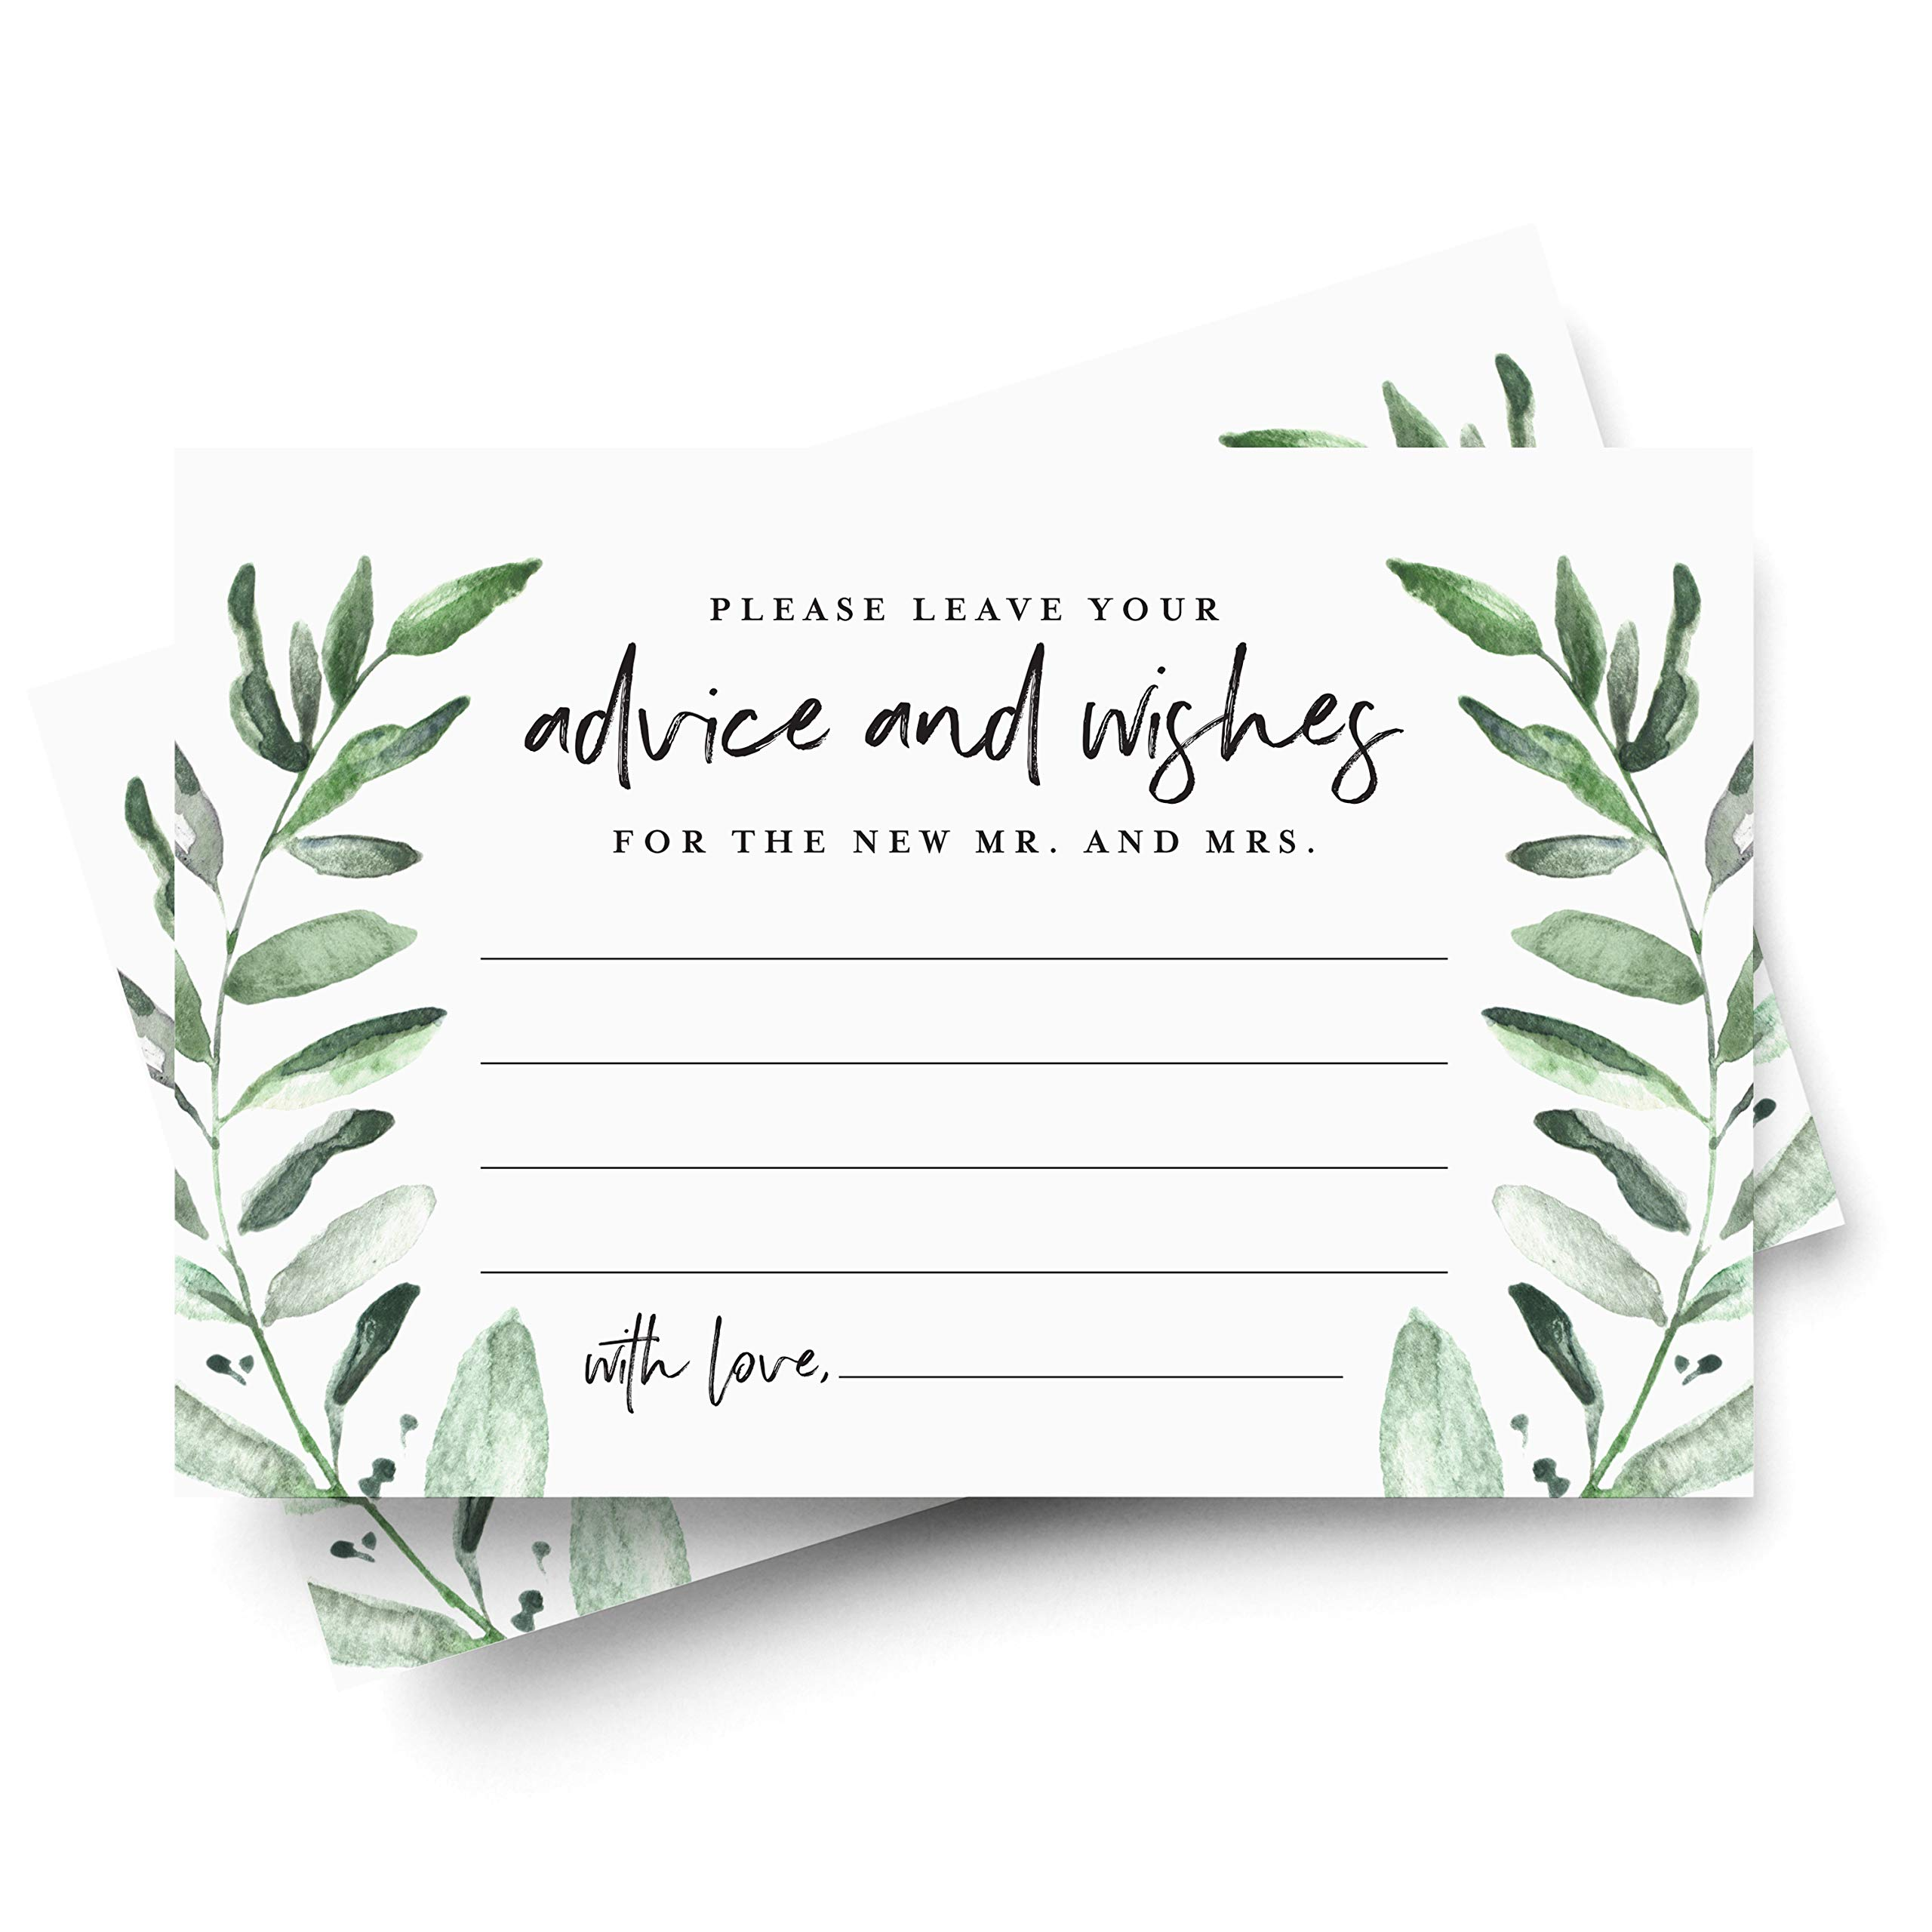 Bliss Paper Boutique Greenery Advice and Wishes Cards for The Bride and Groom, Perfect for: Bridal Shower or Wedding, 4x6 Cards (Pack of 50) from